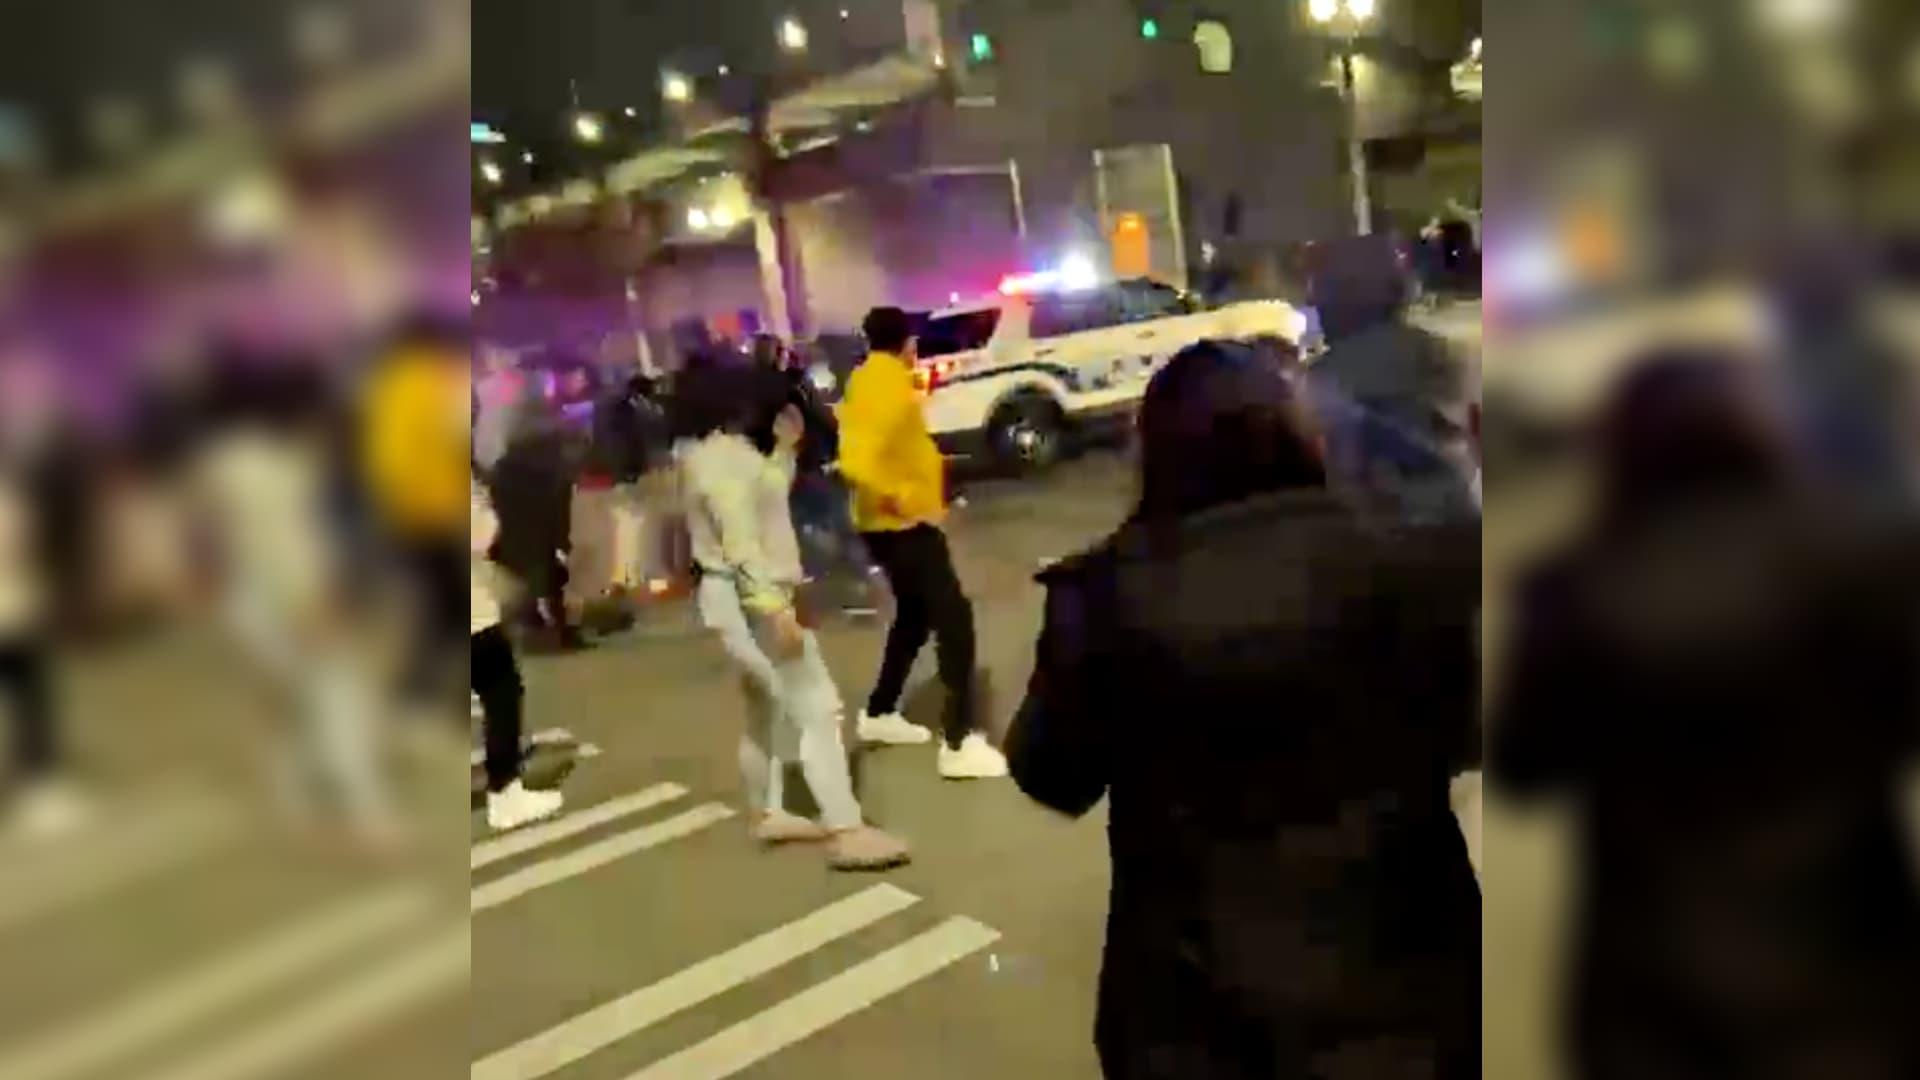 Tacoma police vehicle drives through crowd in viral video – TheGrio